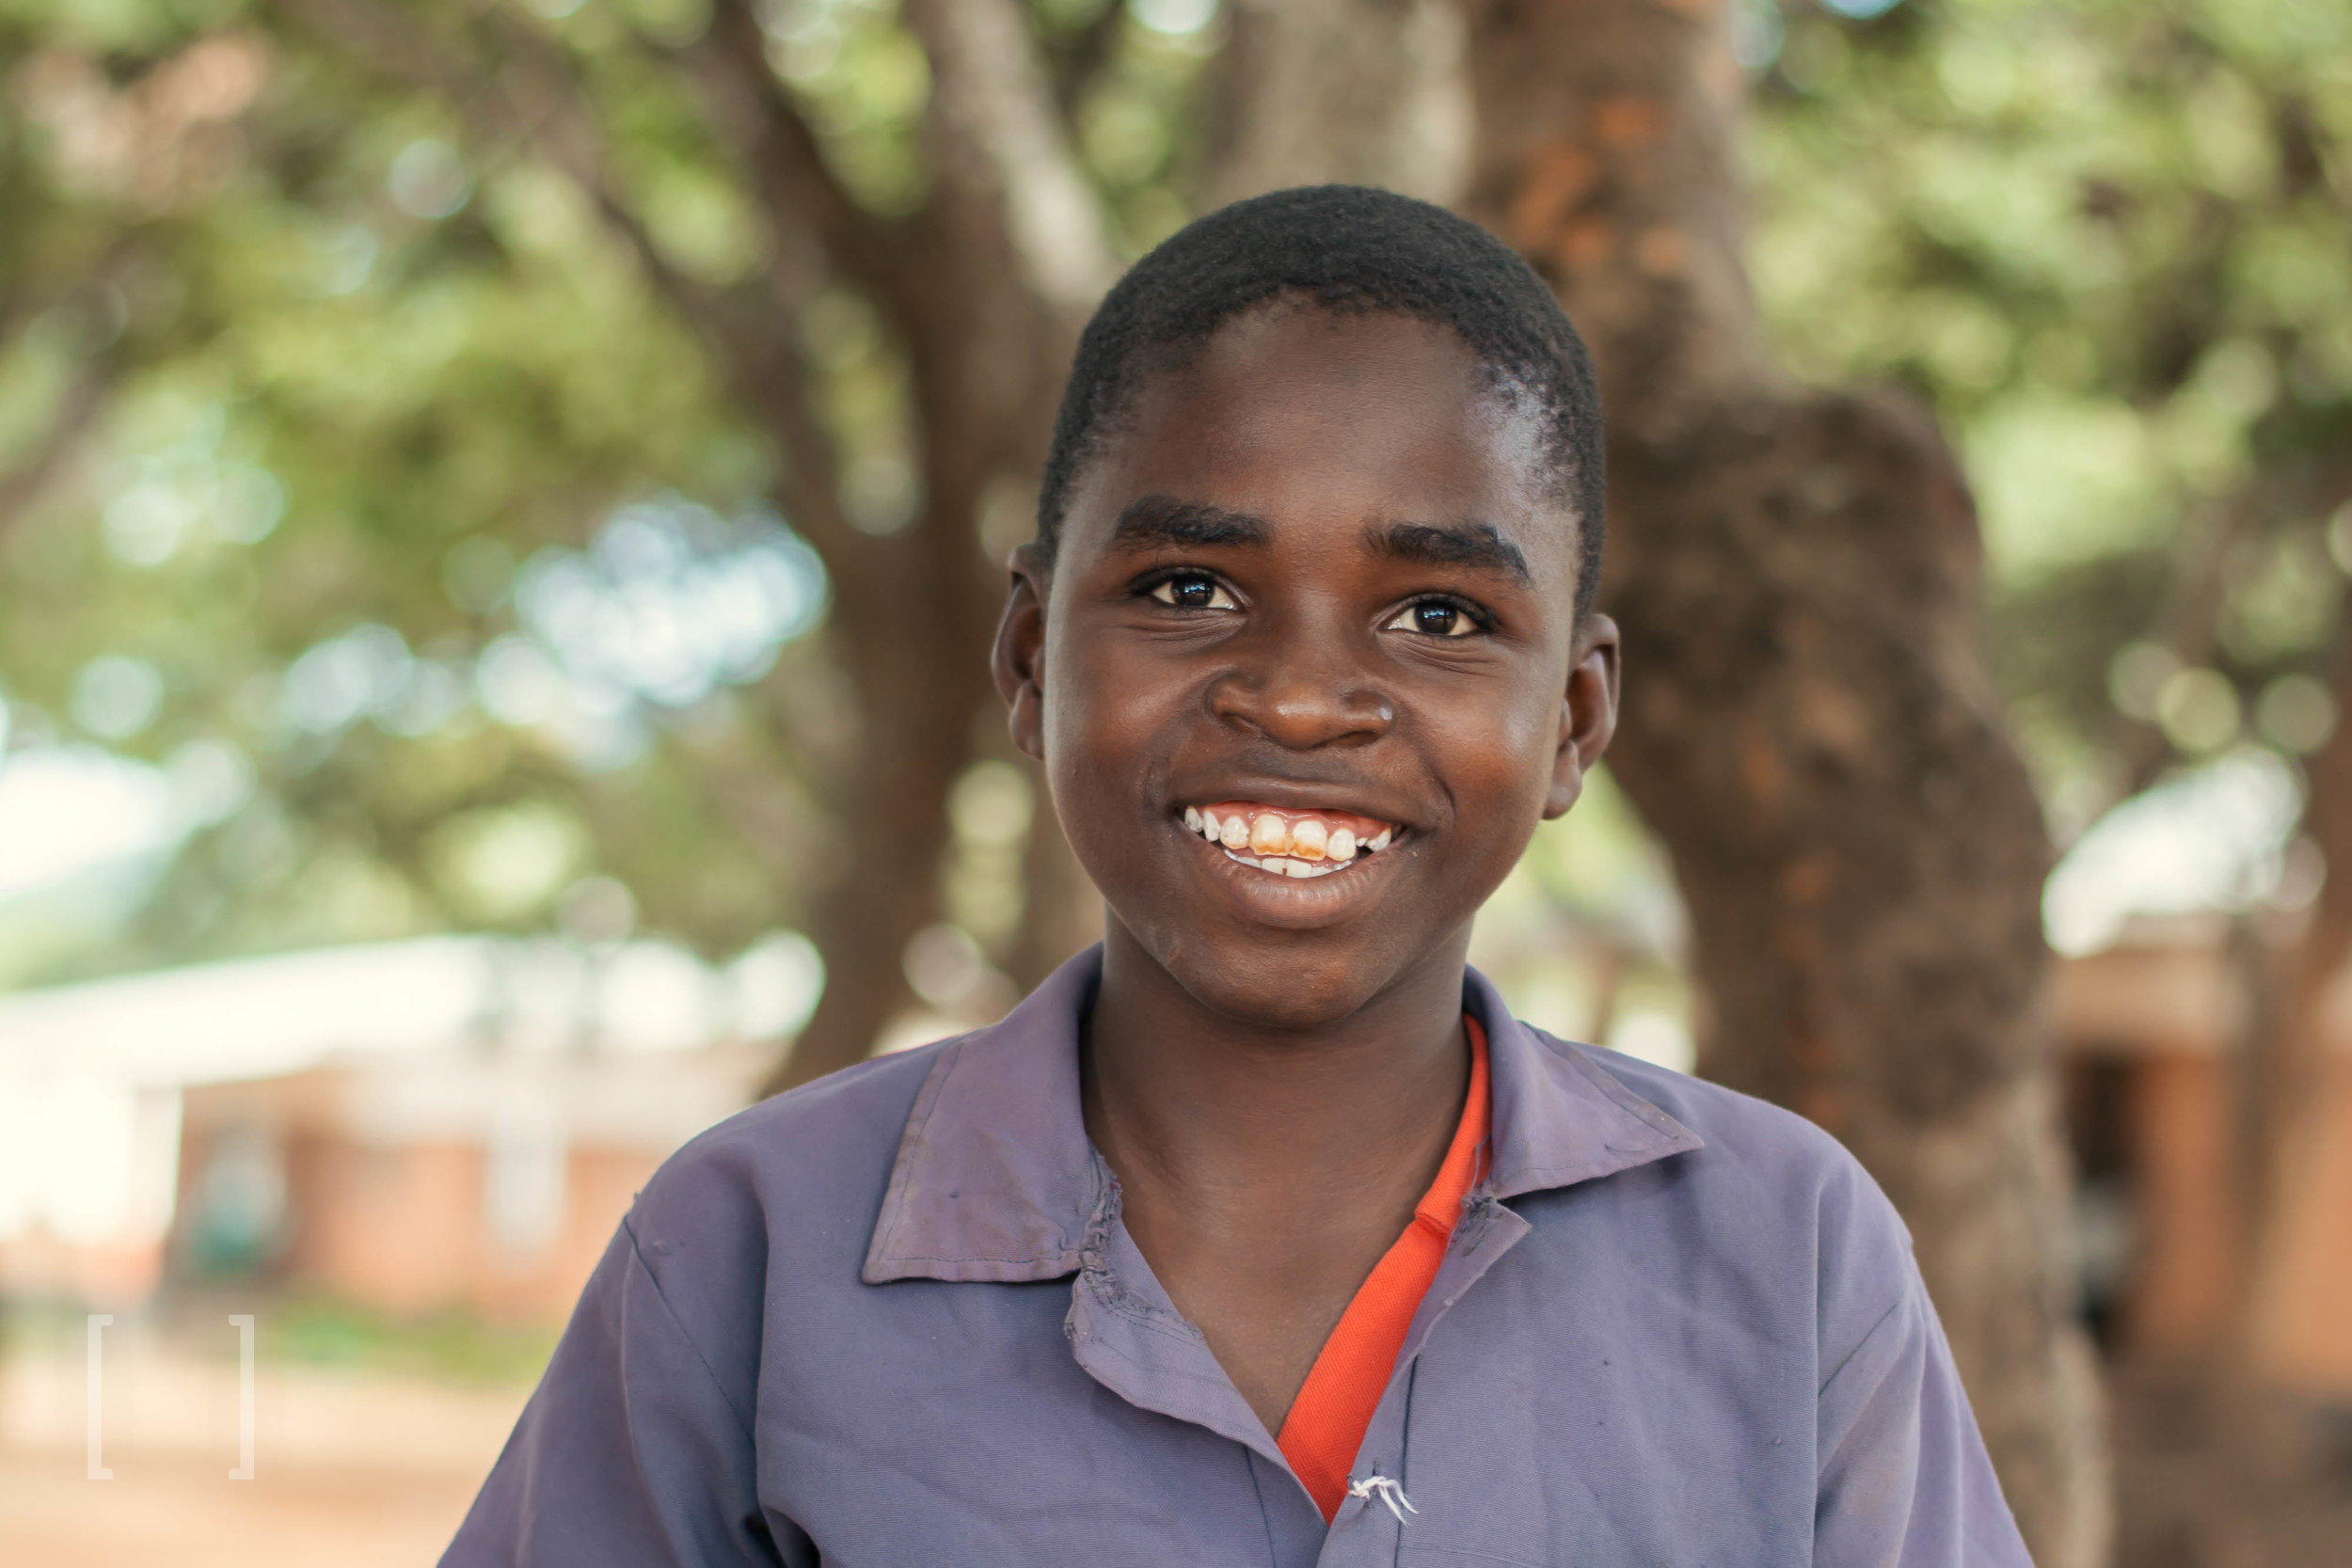 Yakiti - Yakiti was abandoned by his mother when he was very young. He does well in school and his favorite subjects are History and Biology. In his free time, he loves playing soccer with the other children. His favorite color is white. Sponsor Yakiti and join his global family!